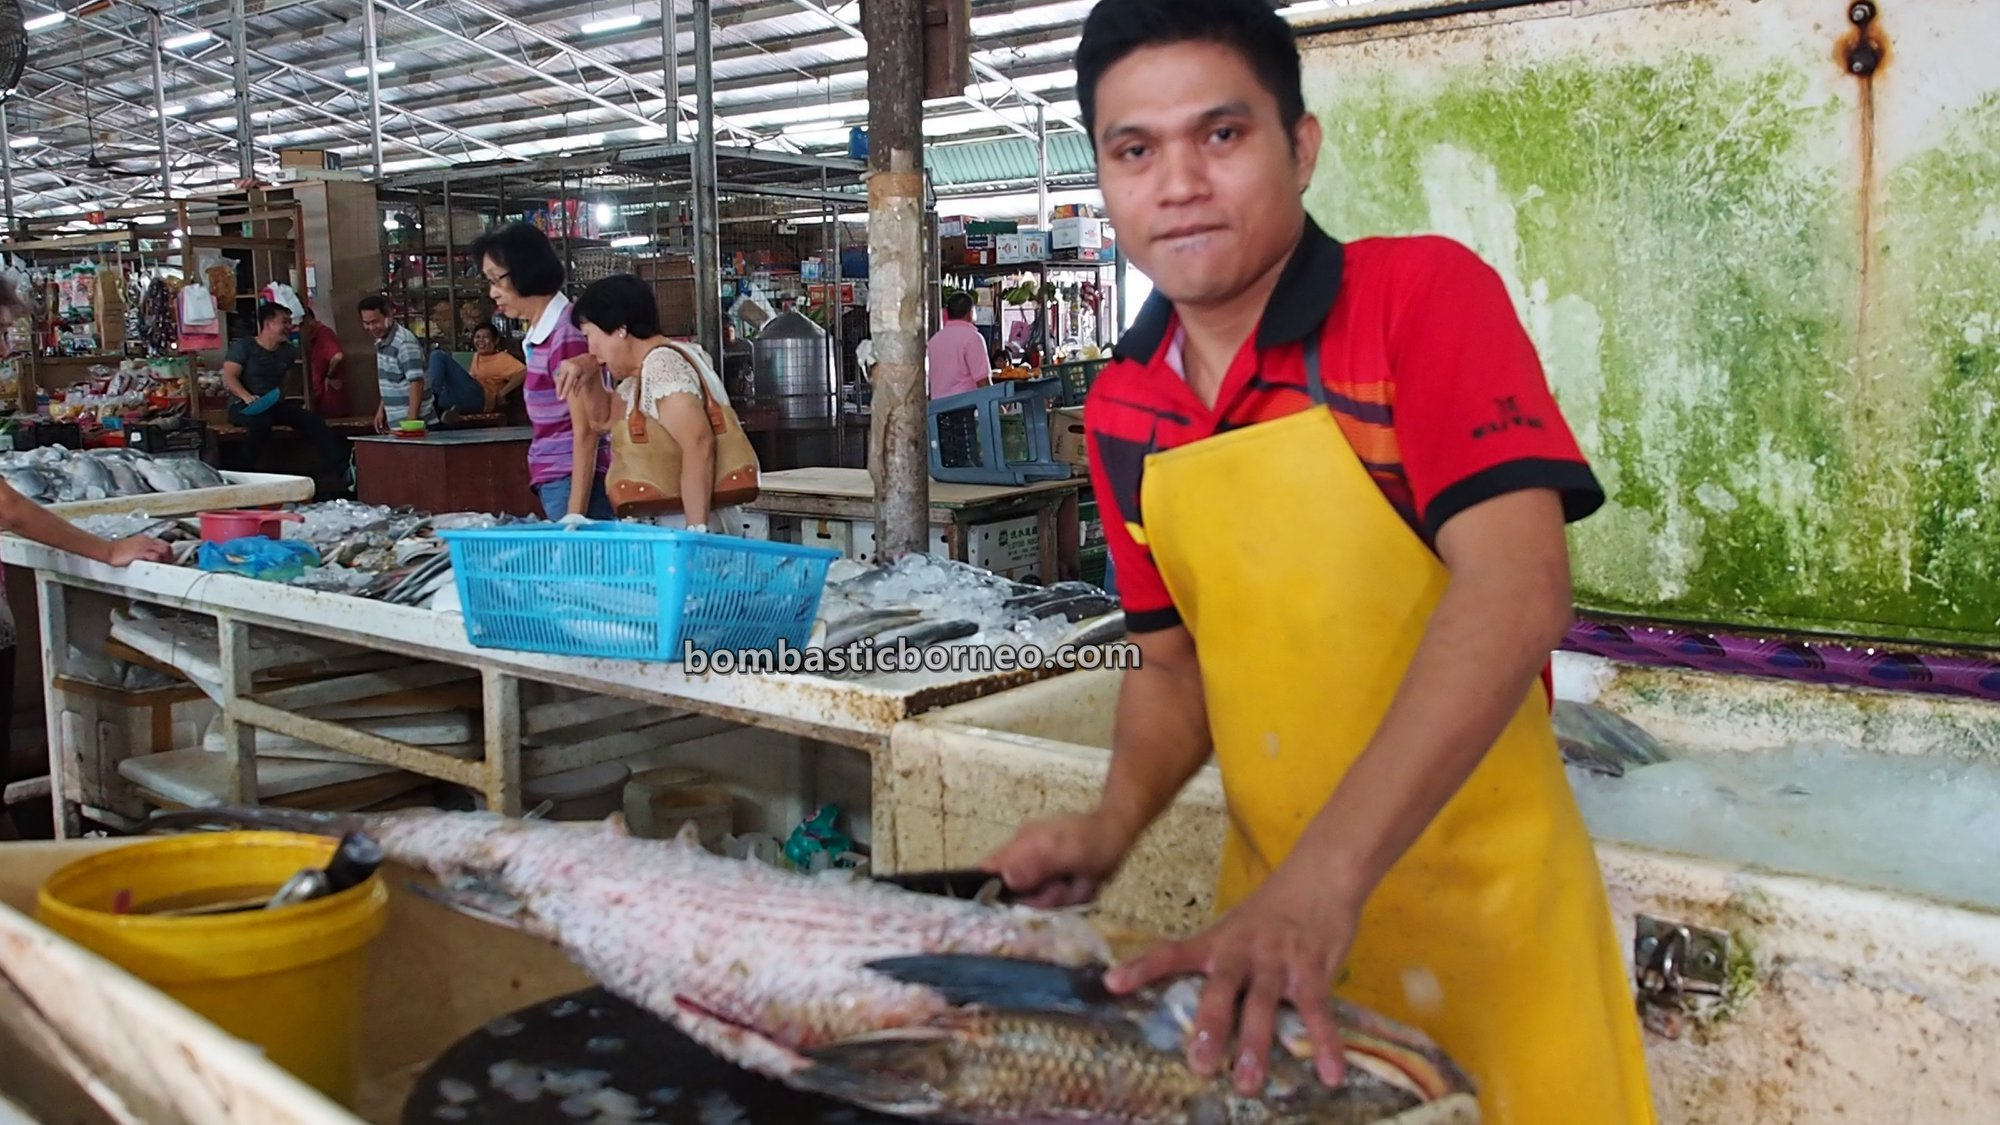 local market, traditional, backpackers, destination, exploration, seafood, makanan laut, Borneo, Malaysia, Tourism, tourist attraction, travel guide, 探索婆罗洲游踪, 马来西亚沙巴, 斗湖新安海鲜市场,